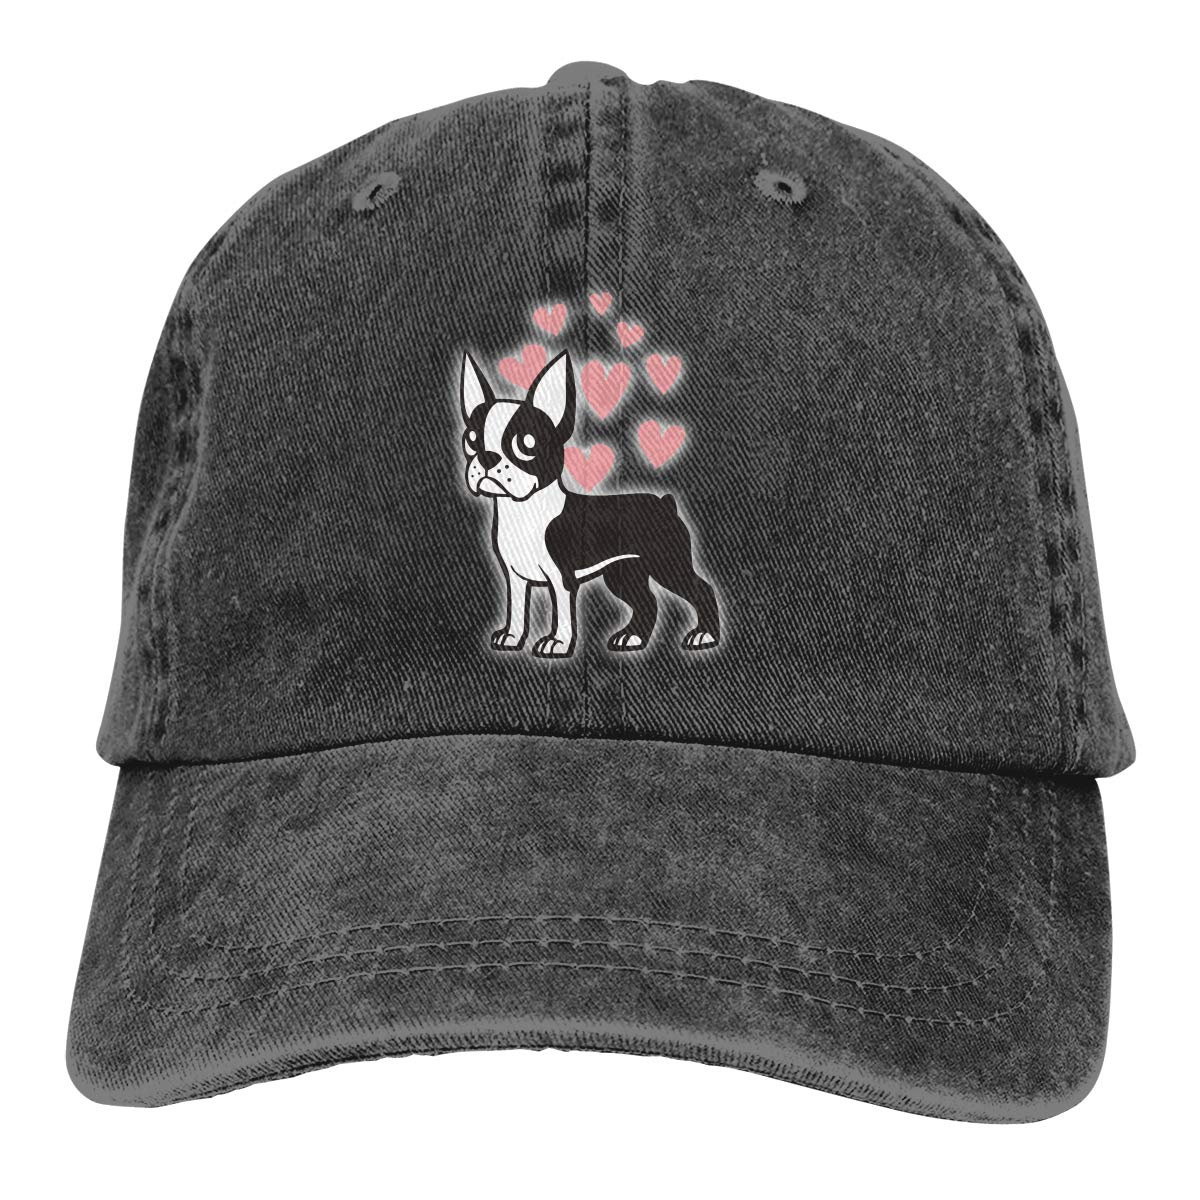 PMGM-C Boston Terrier Adult Personalize Denim Outdoor Sports Hat Adjustable Baseball Cap